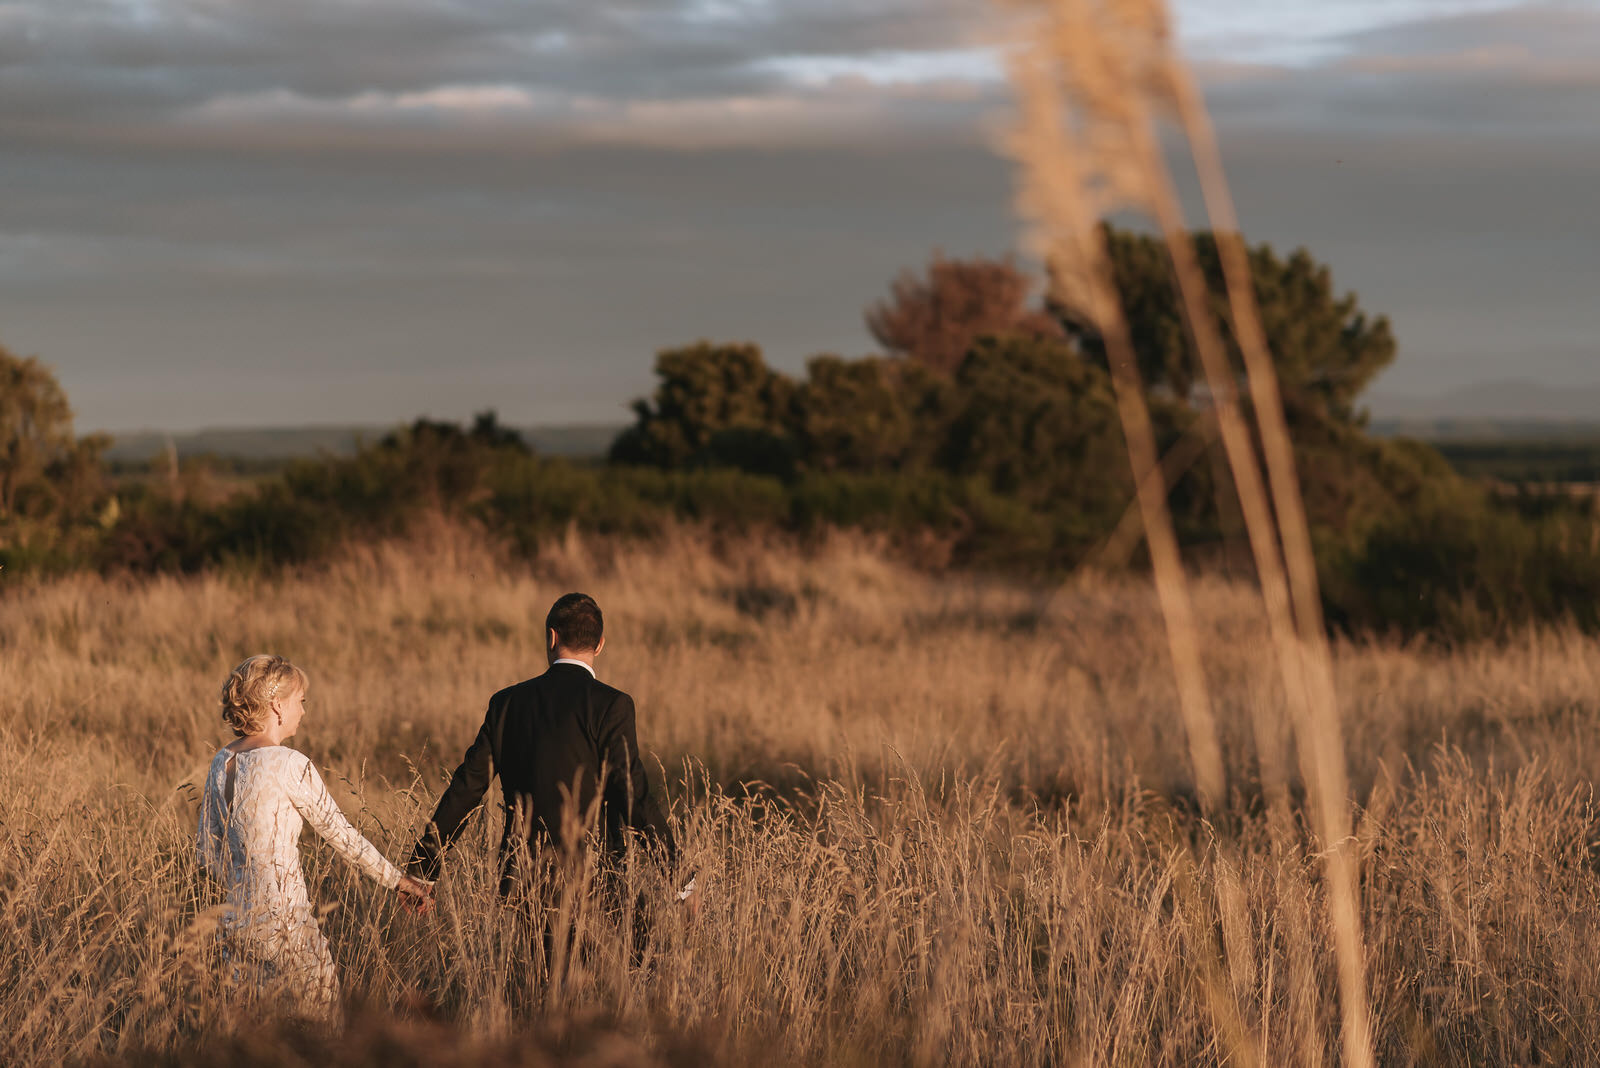 newfound-photography-n-a-lake-taupo-nz-wedding-017